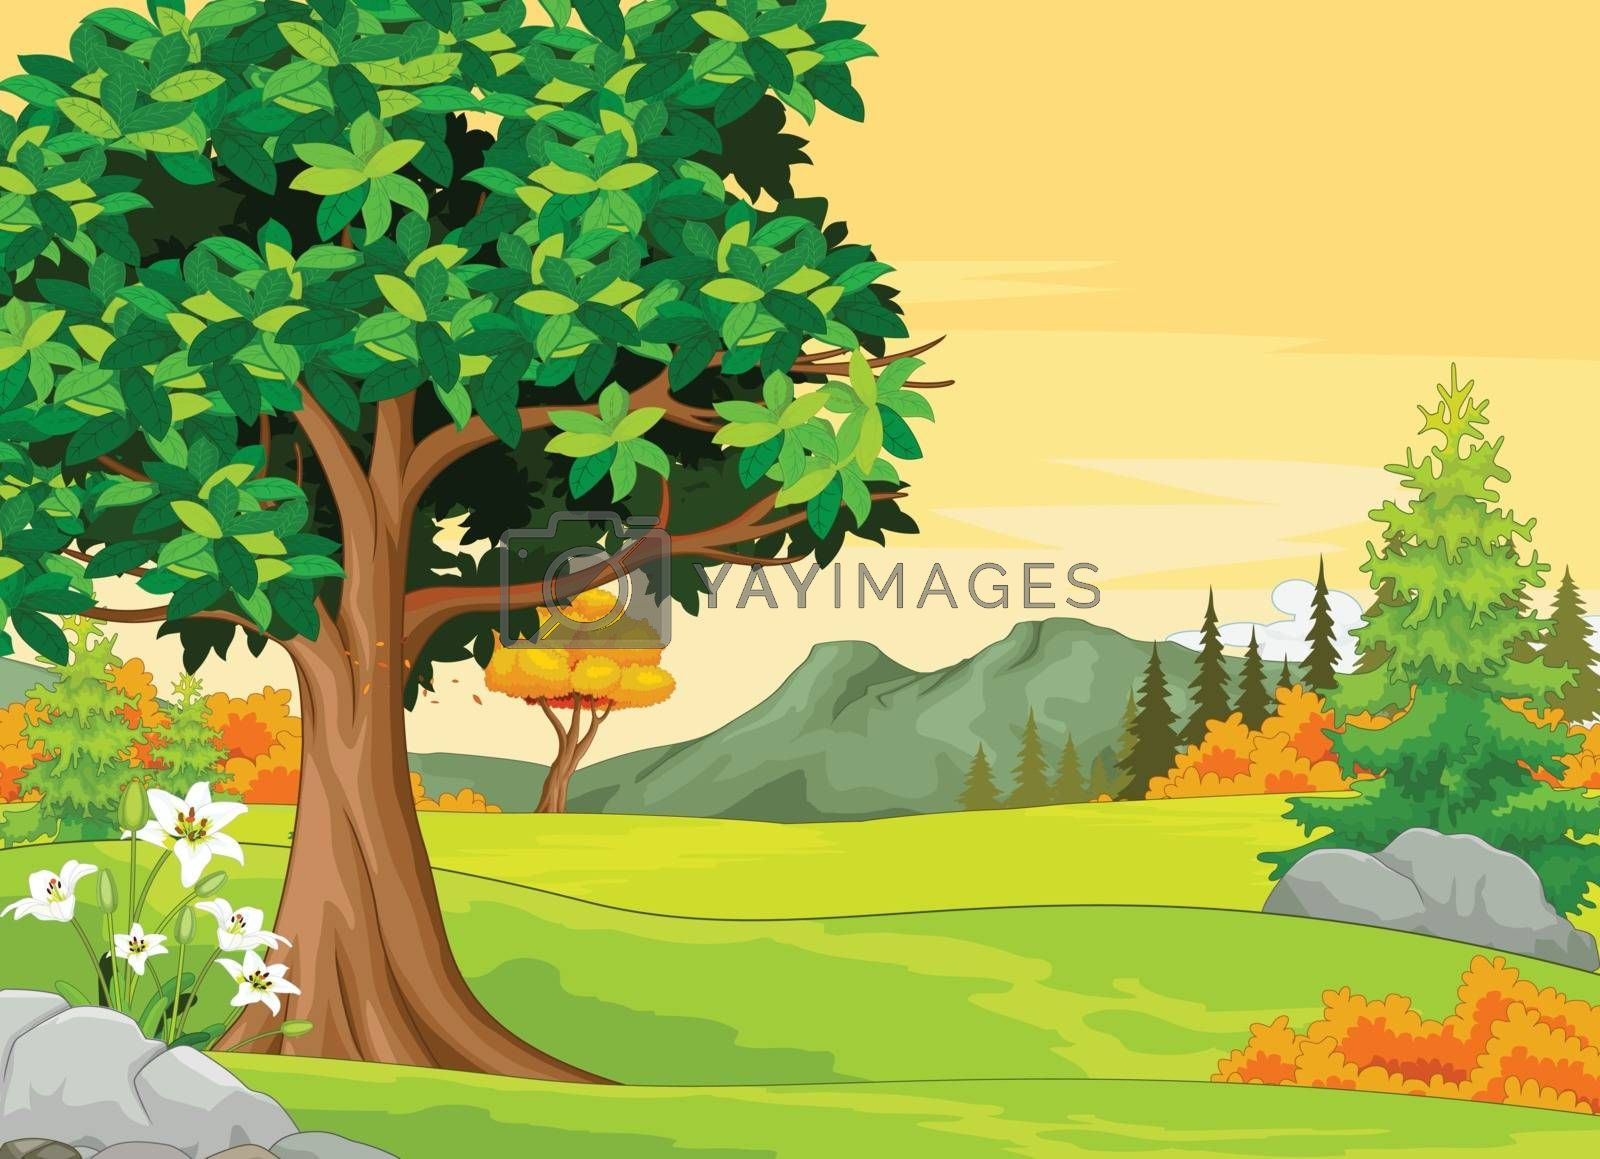 Royalty free image of Autumn Forets View Background by sujono